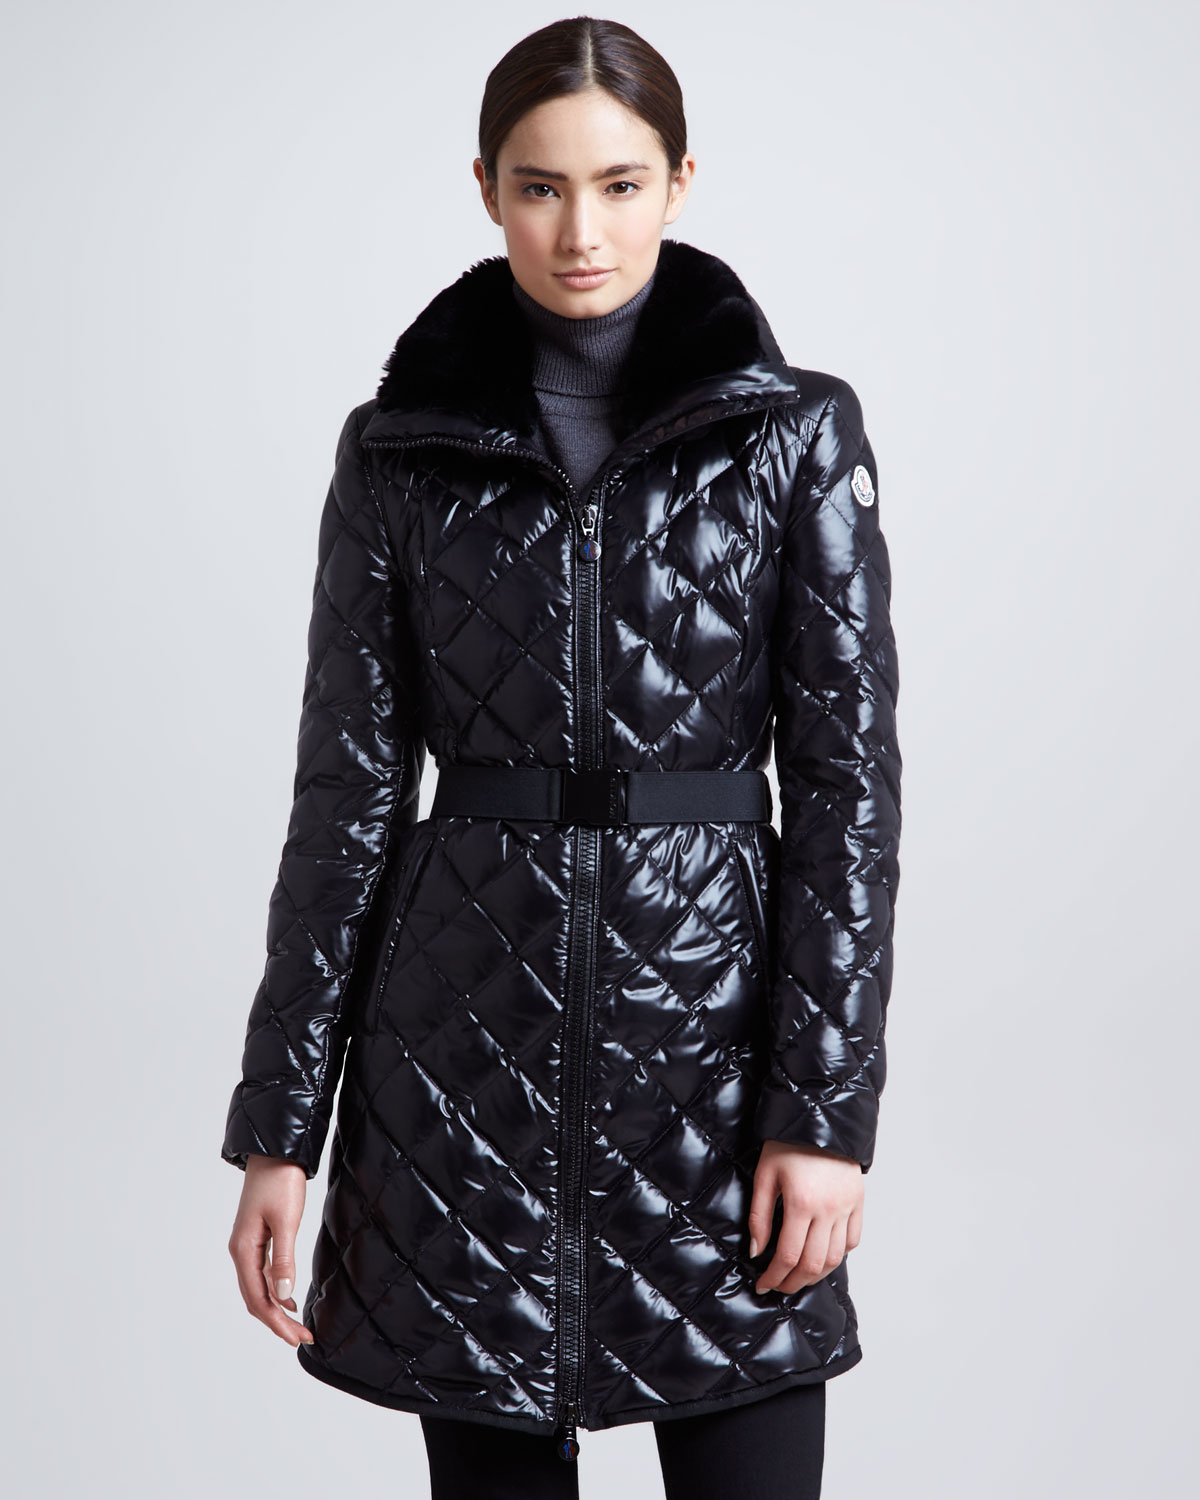 Buy the latest black puffer jacket cheap shop fashion style with free shipping, and check out our daily updated new arrival black puffer jacket at metrdisk.cf